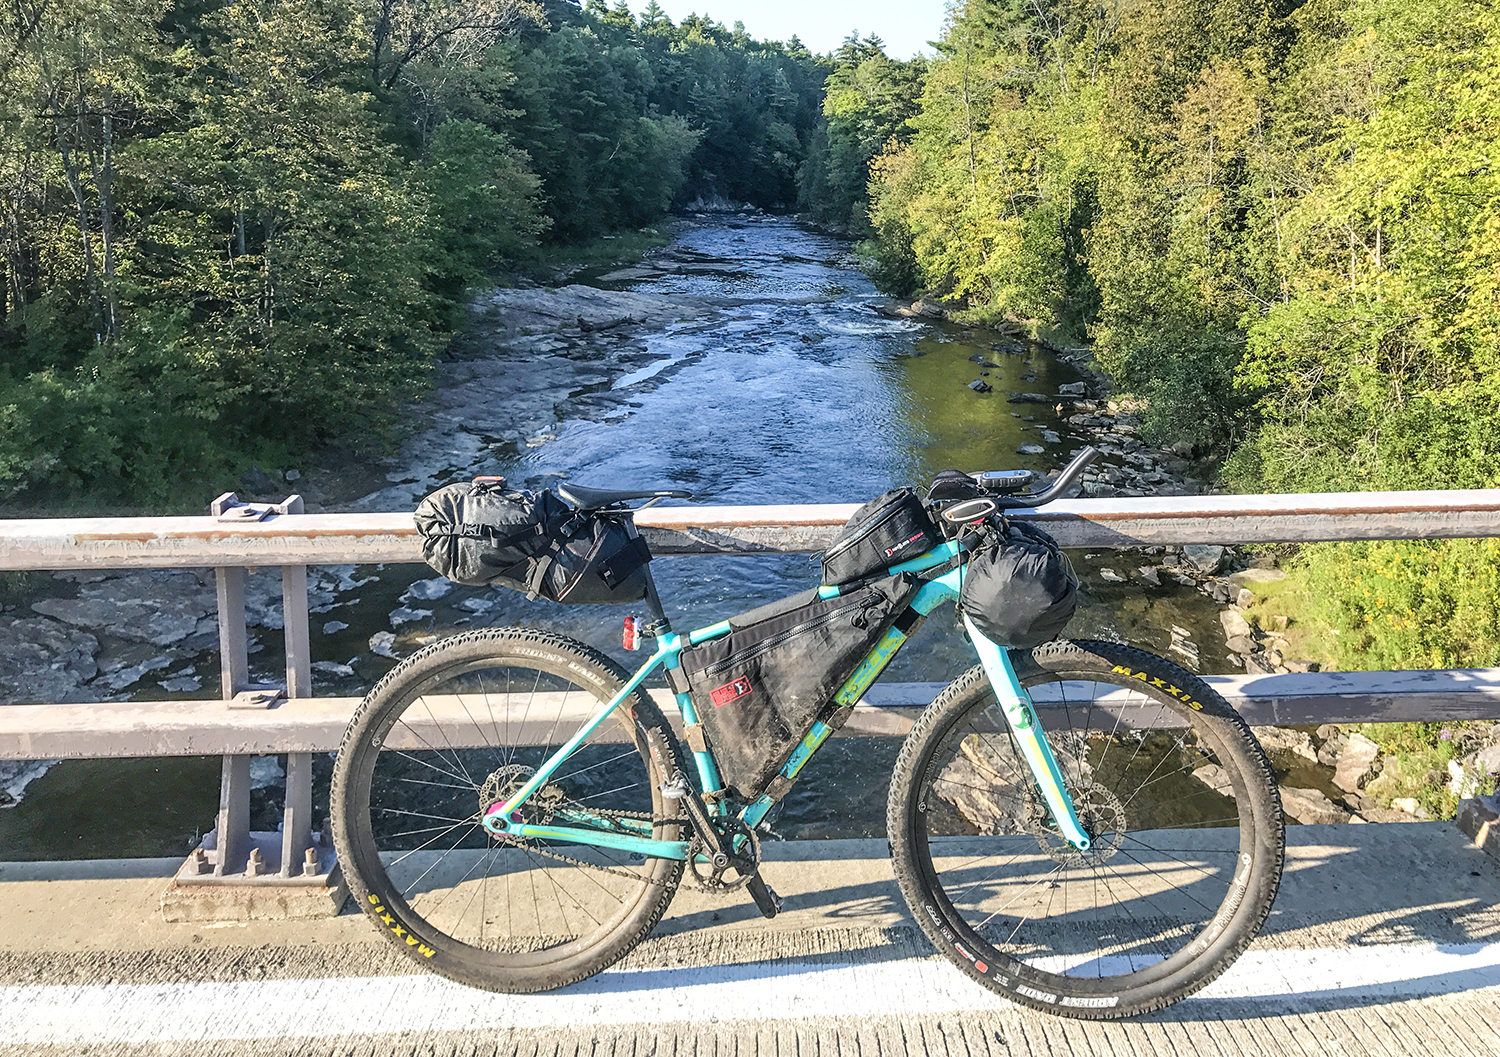 Bike setup in Essex, during The Adirondack Trail Ride.